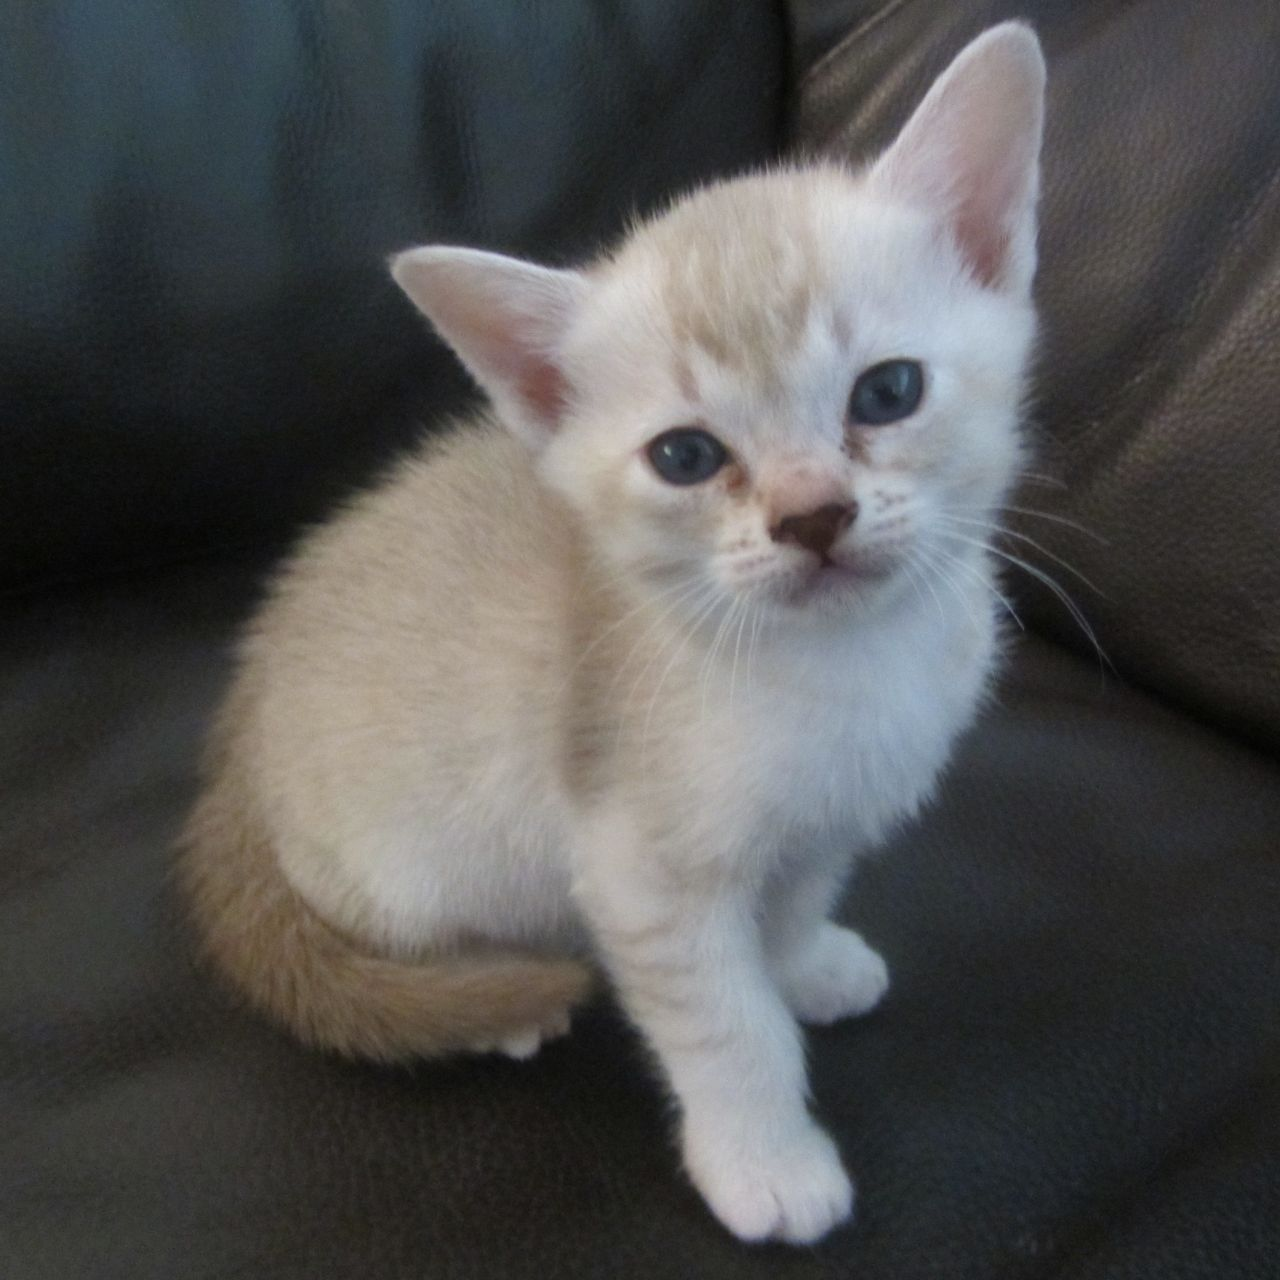 Asian Kitten: Asian Stunning Asian Kittens For Sale Exeter Breed